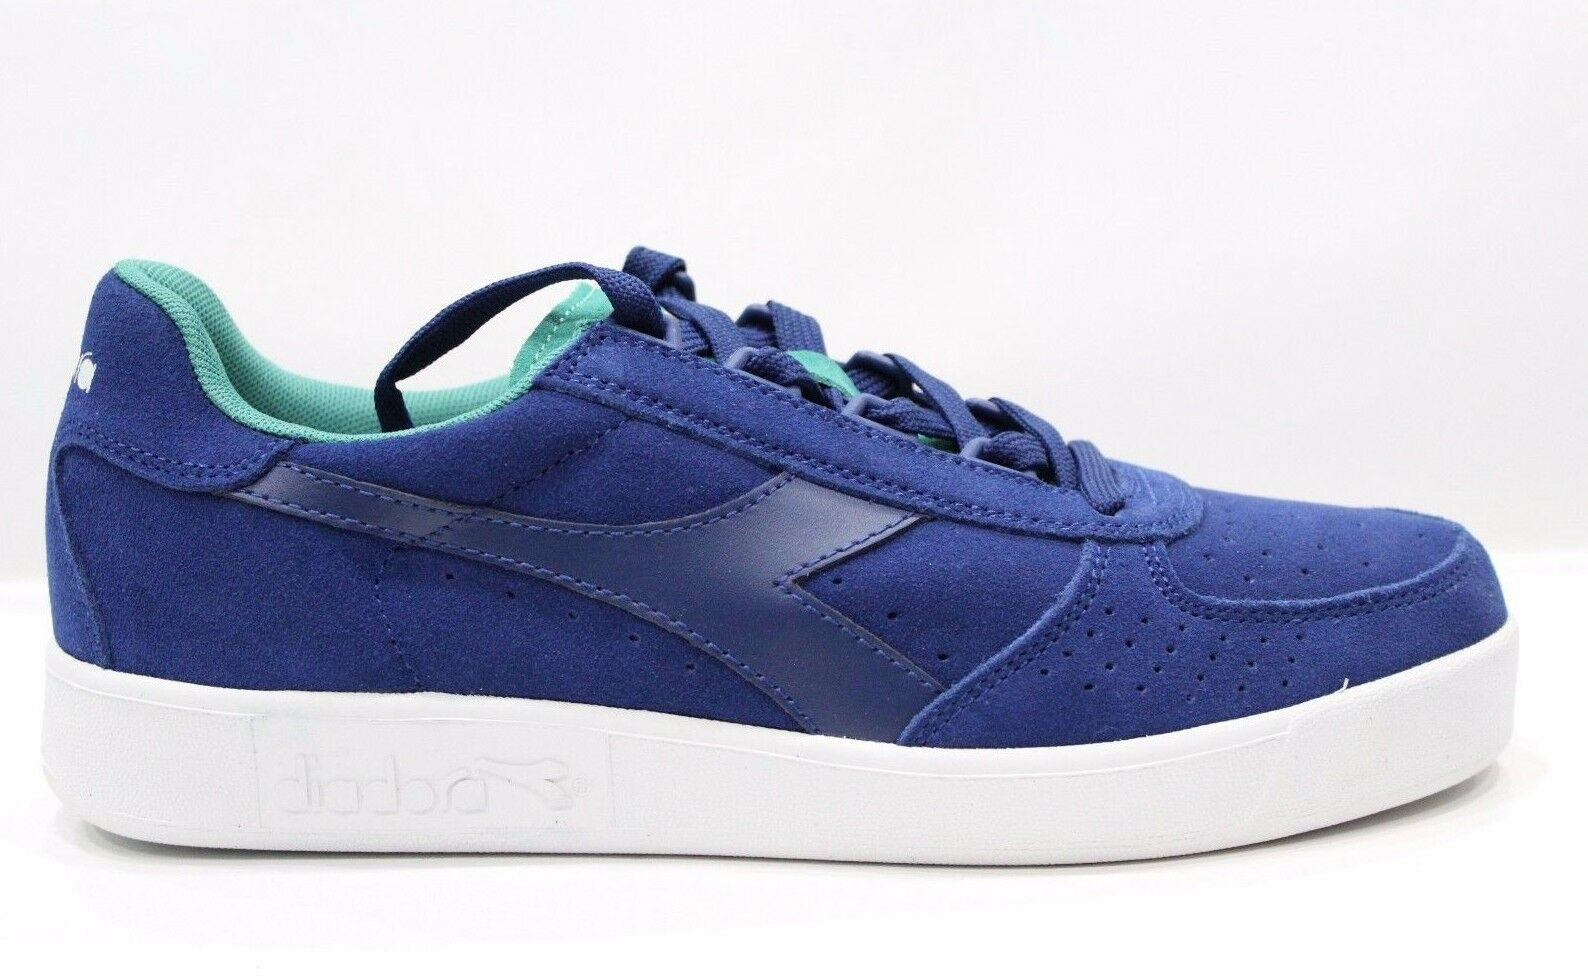 Diadora B.Elite Suede Scarpe Shoes Sneakers bassa Unisex Blue Porcelain Green